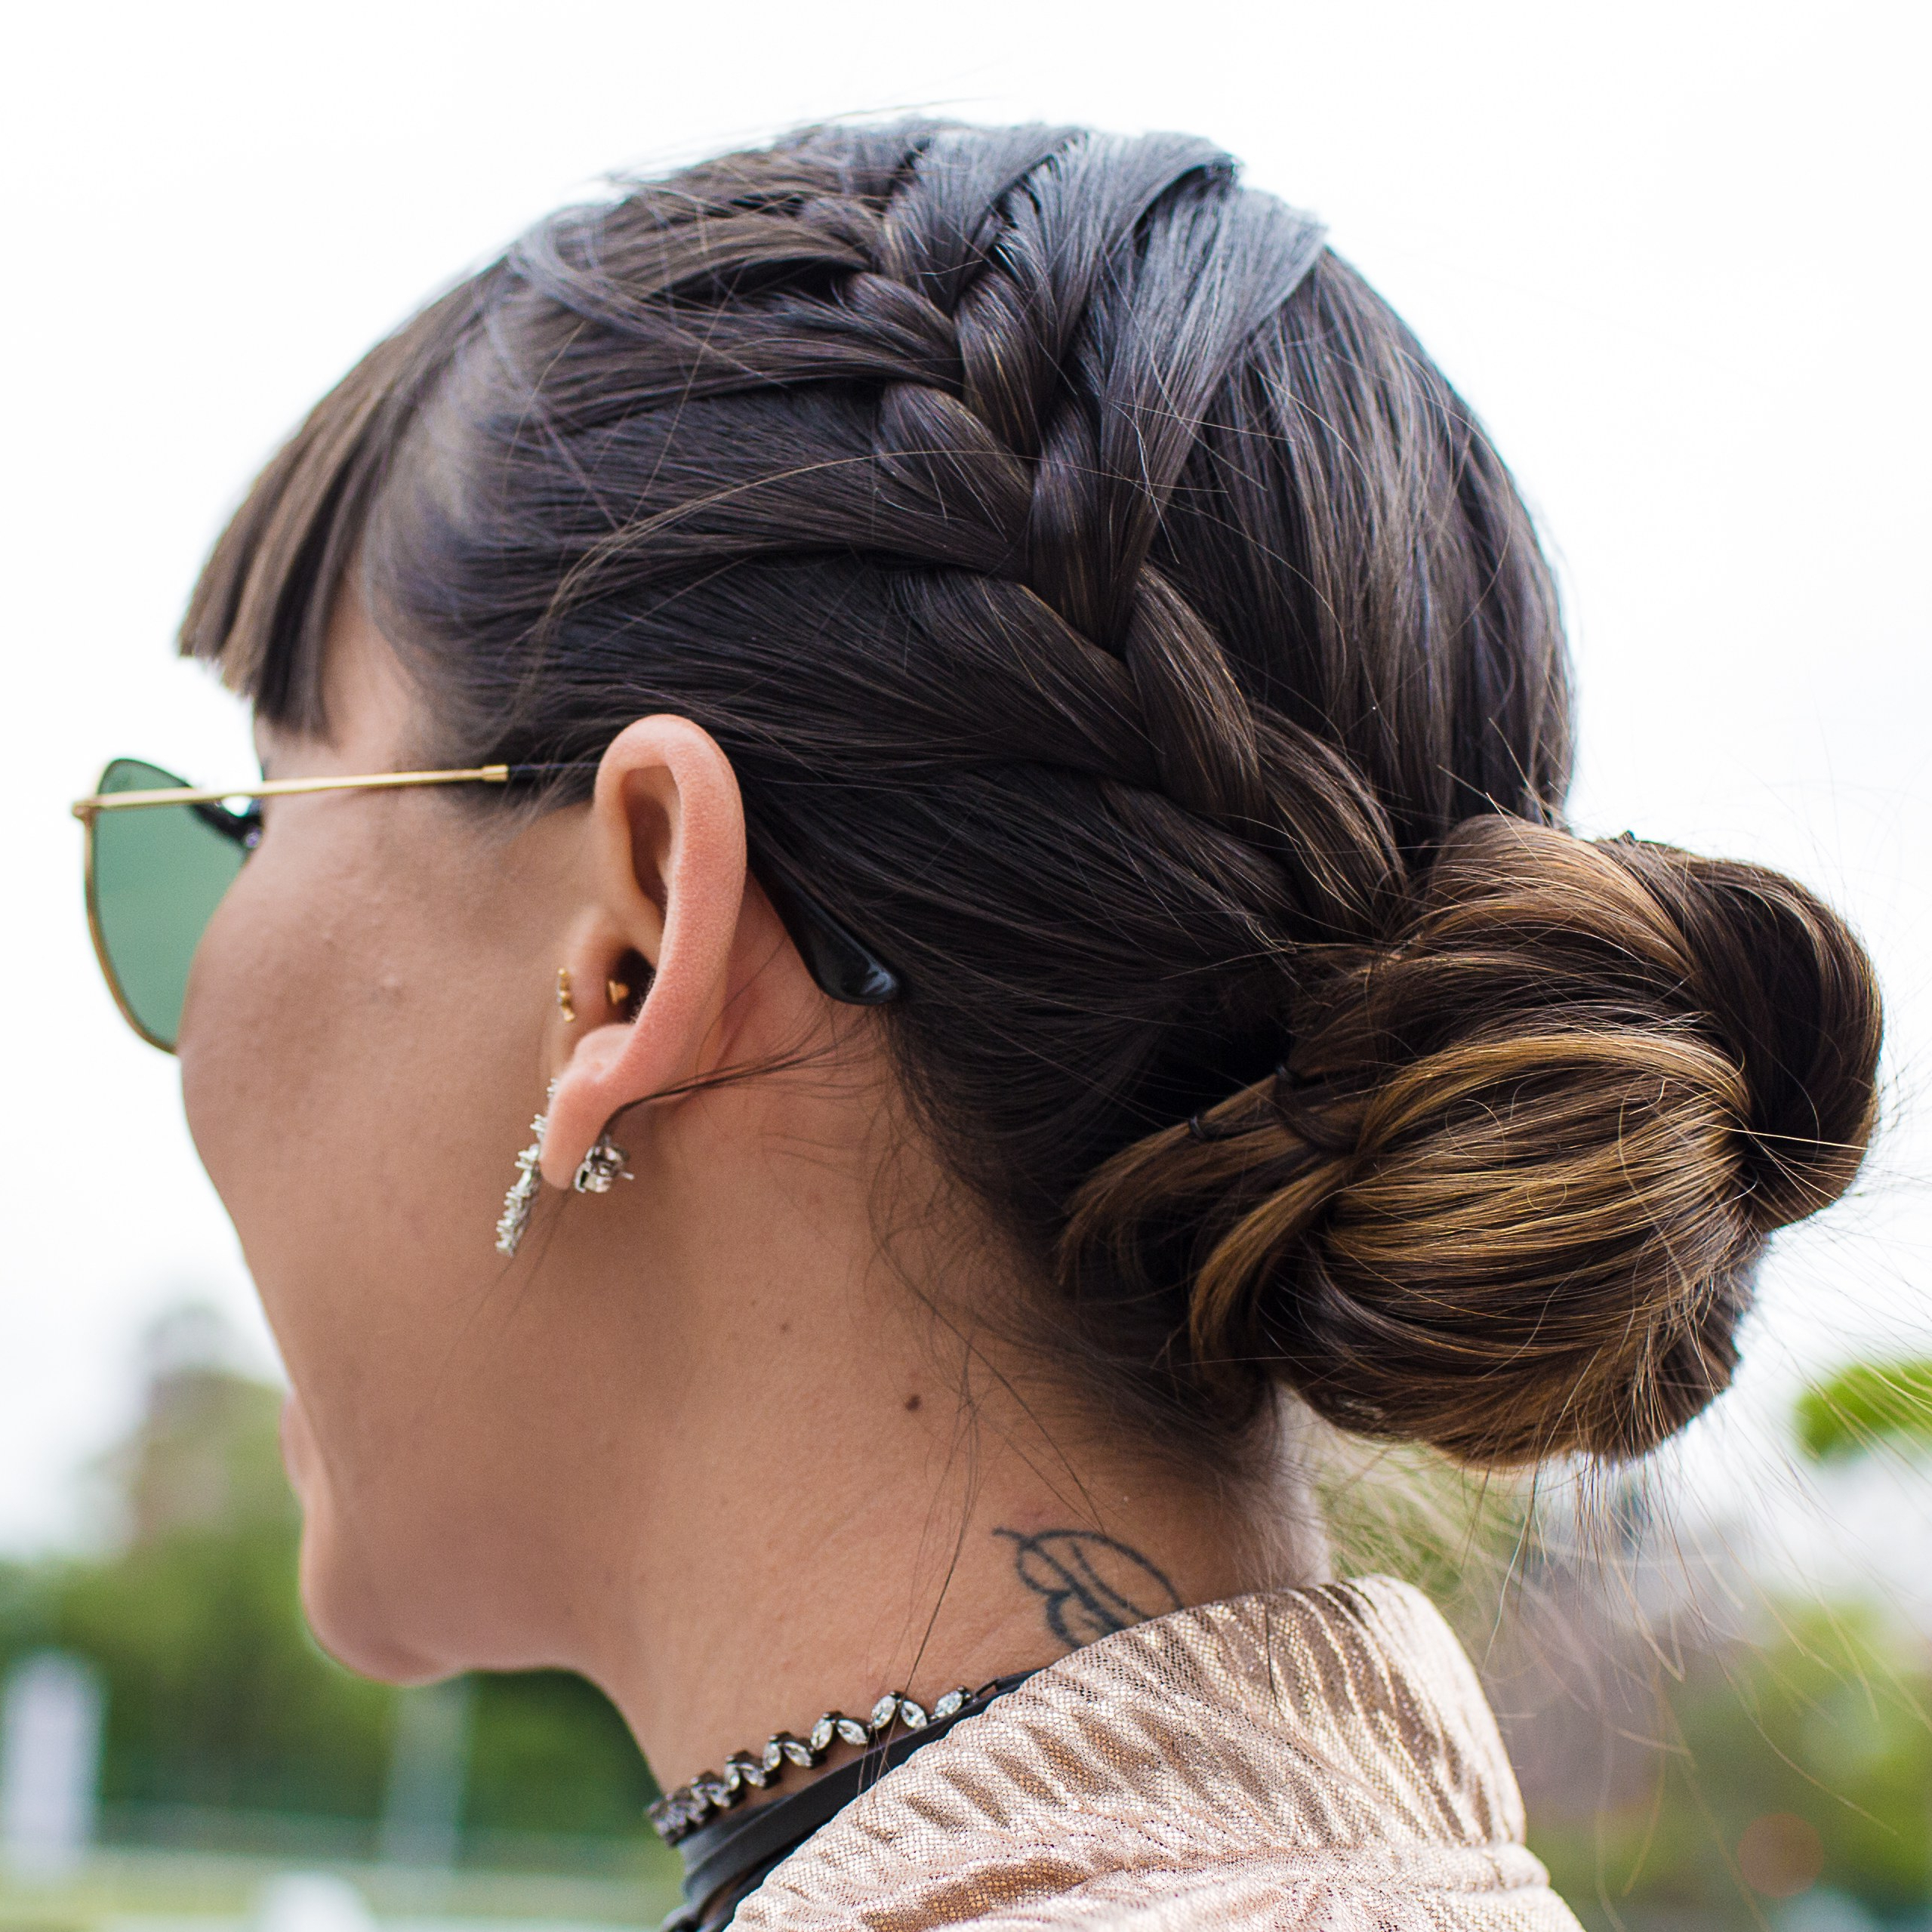 Glamour Regarding Preferred Tight Braided Hairstyles With Headband (View 14 of 20)